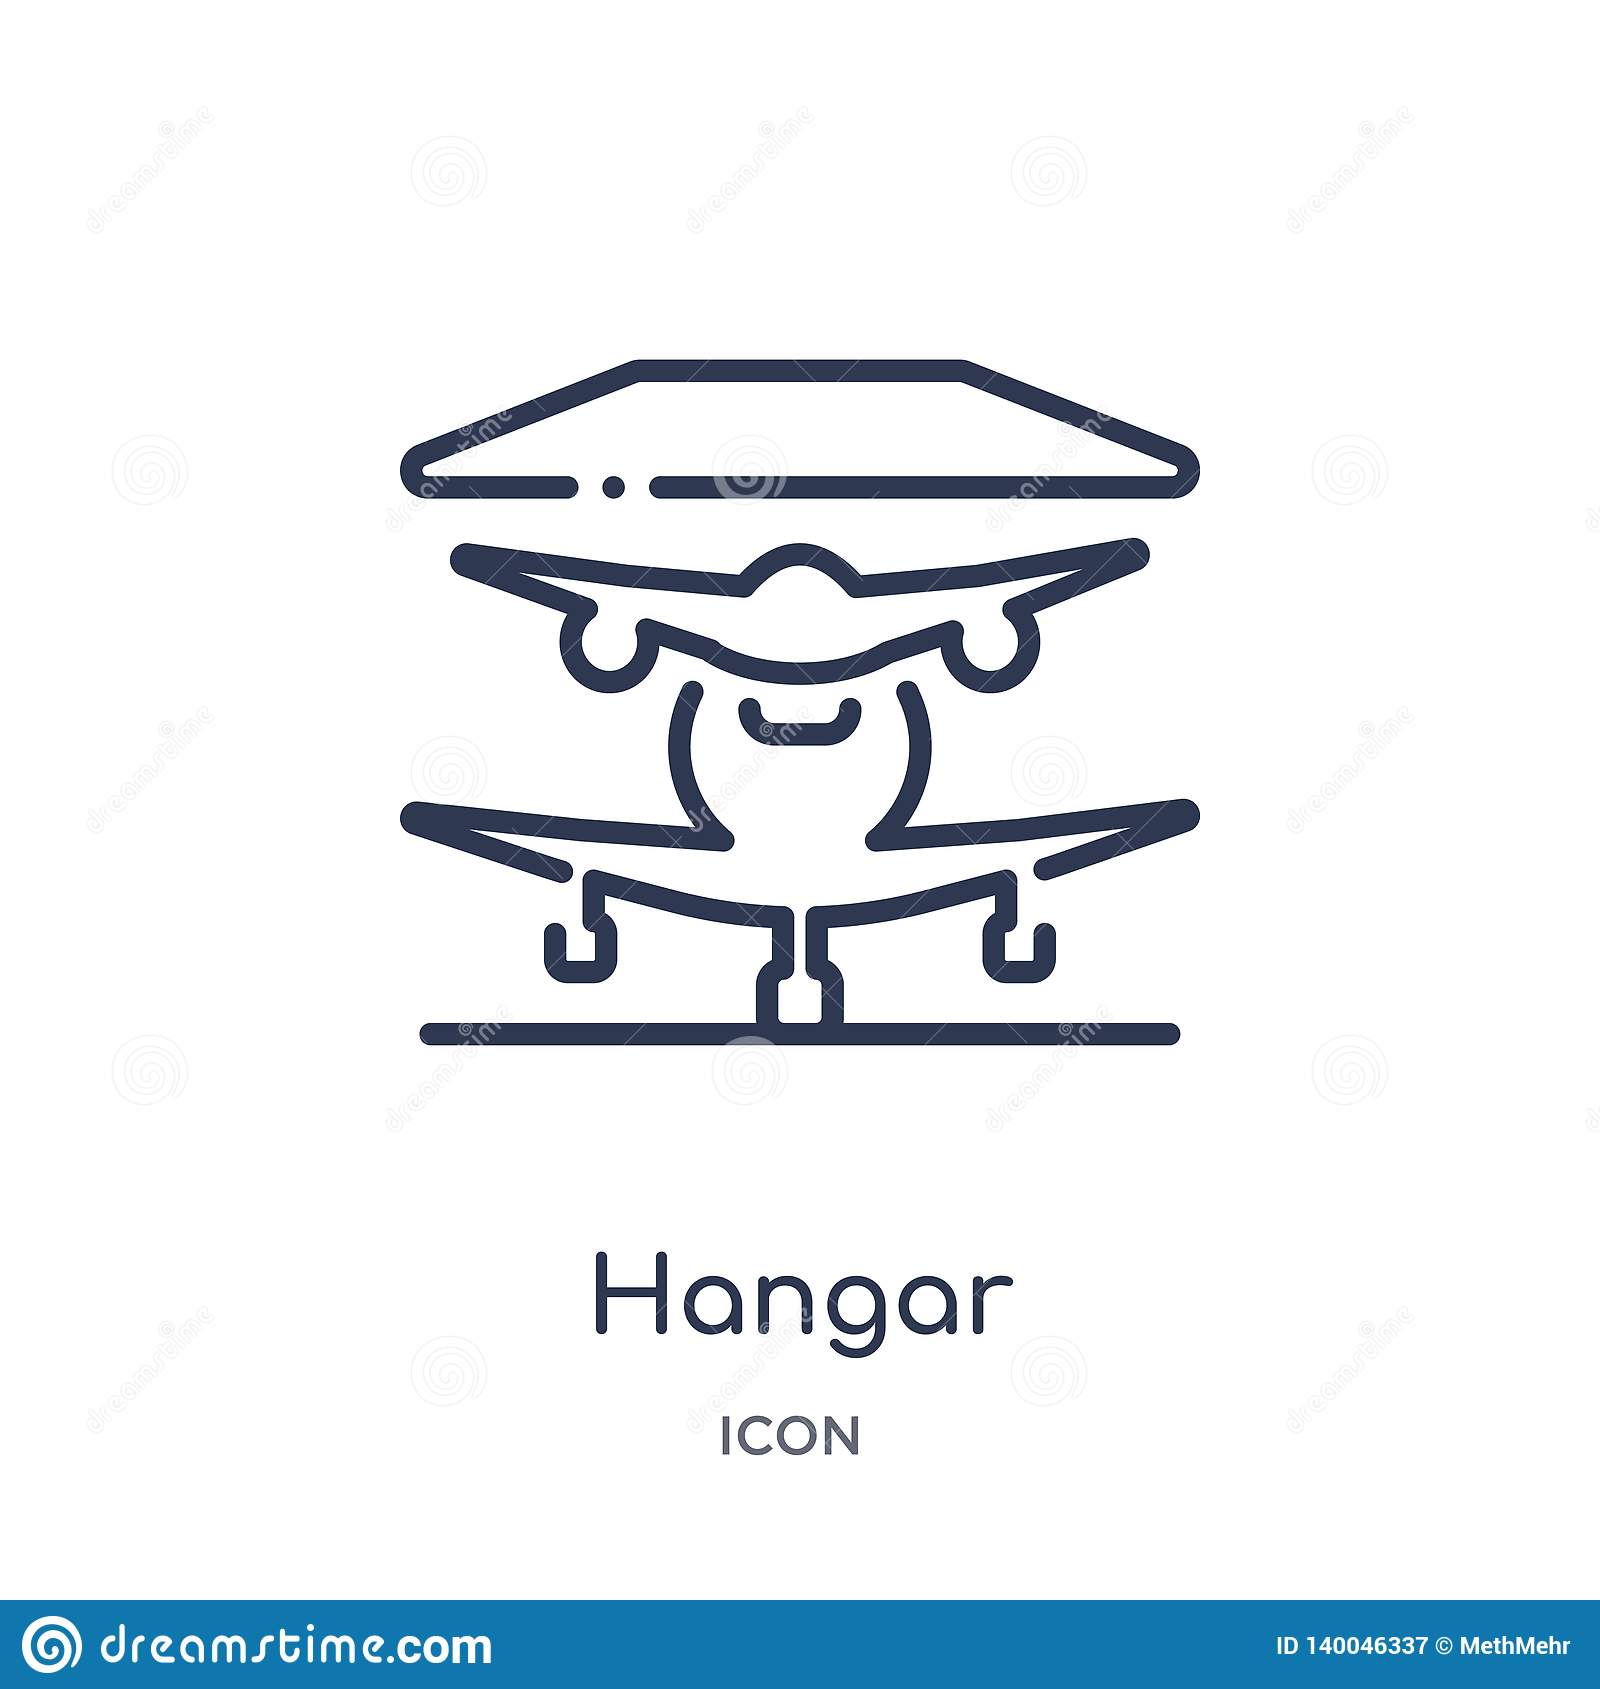 Linear hangar icon from Airport terminal outline collection. Thin line hangar vector isolated on white background. hangar trendy